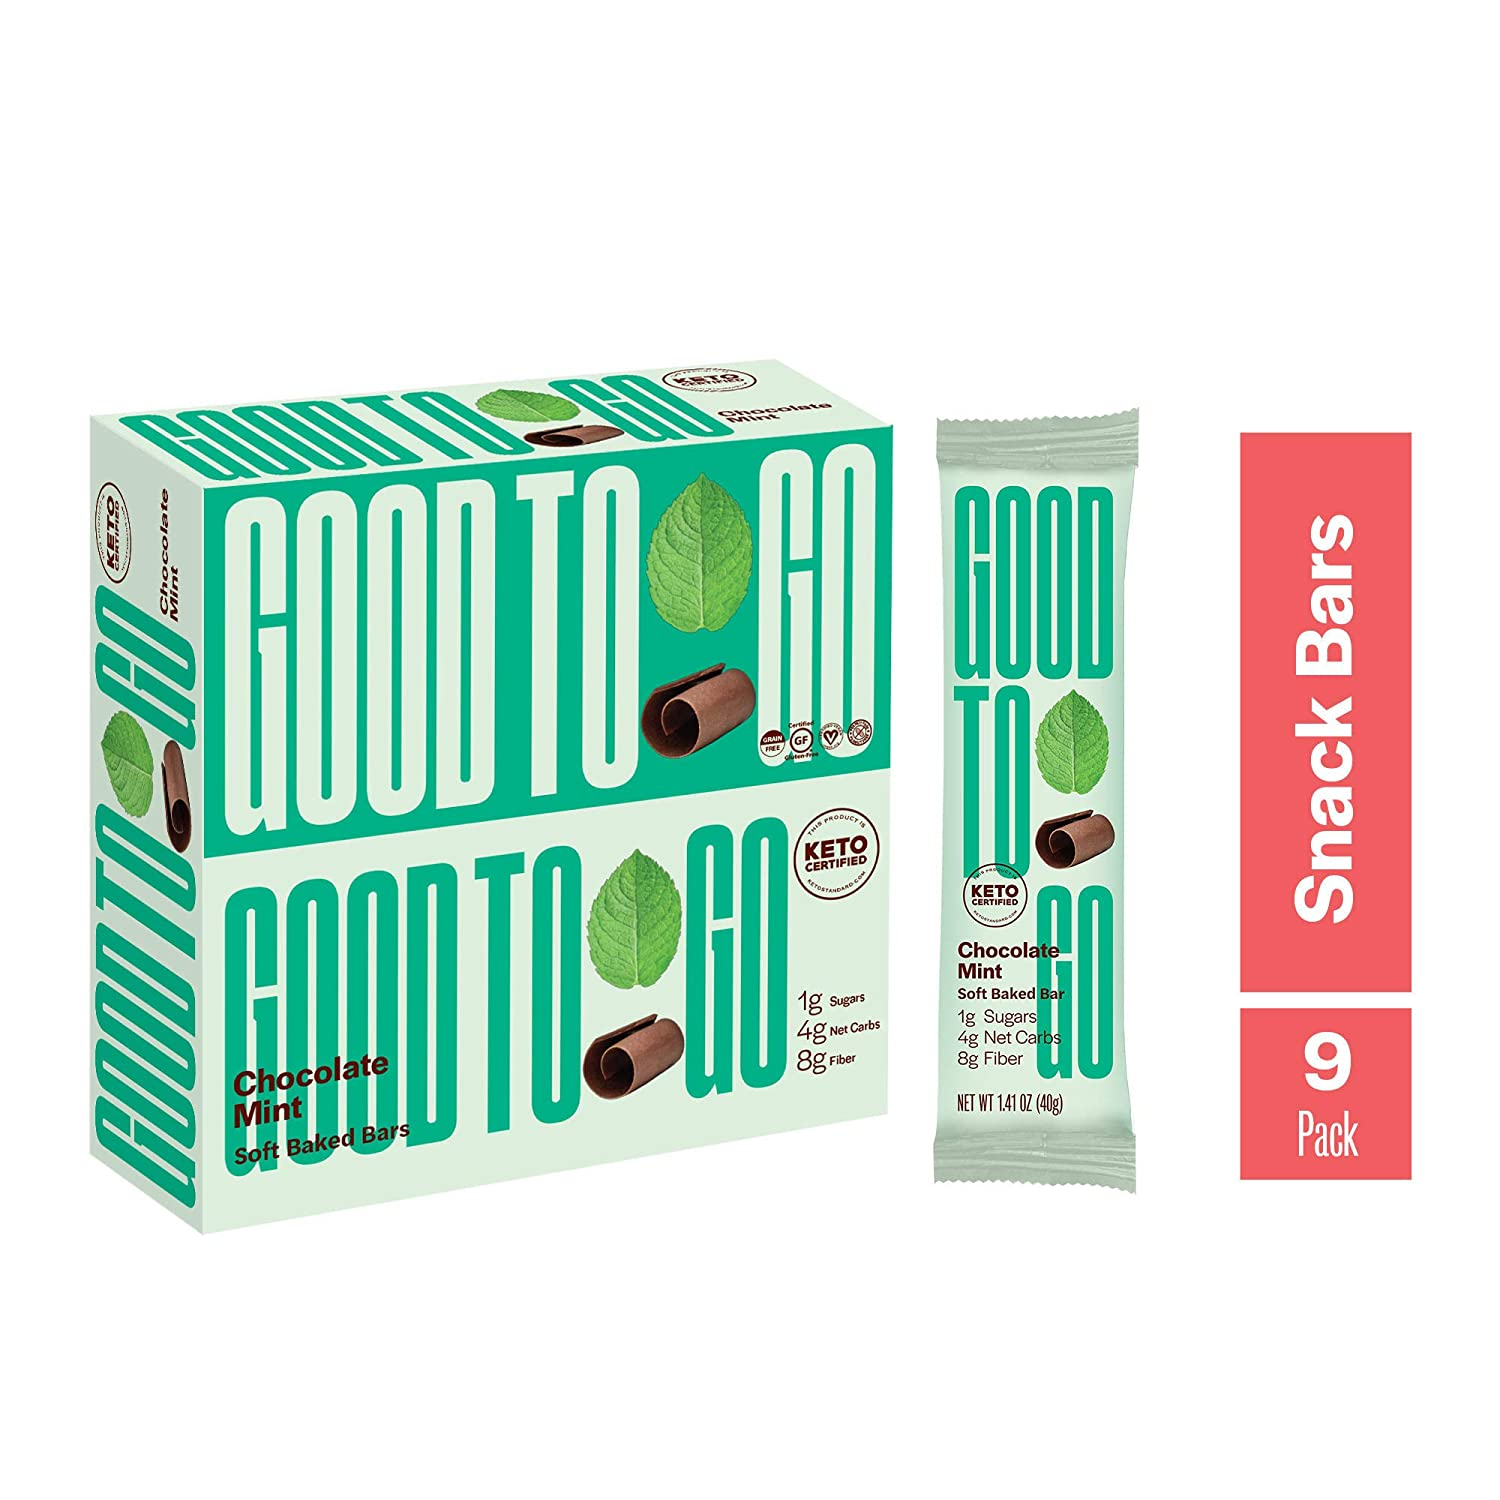 GOOD TO GO Soft Baked Bars - Chocolate Mint, 9 Pack - Gluten Free, Keto Certified, Paleo Friendly, Low Carb Snacks…